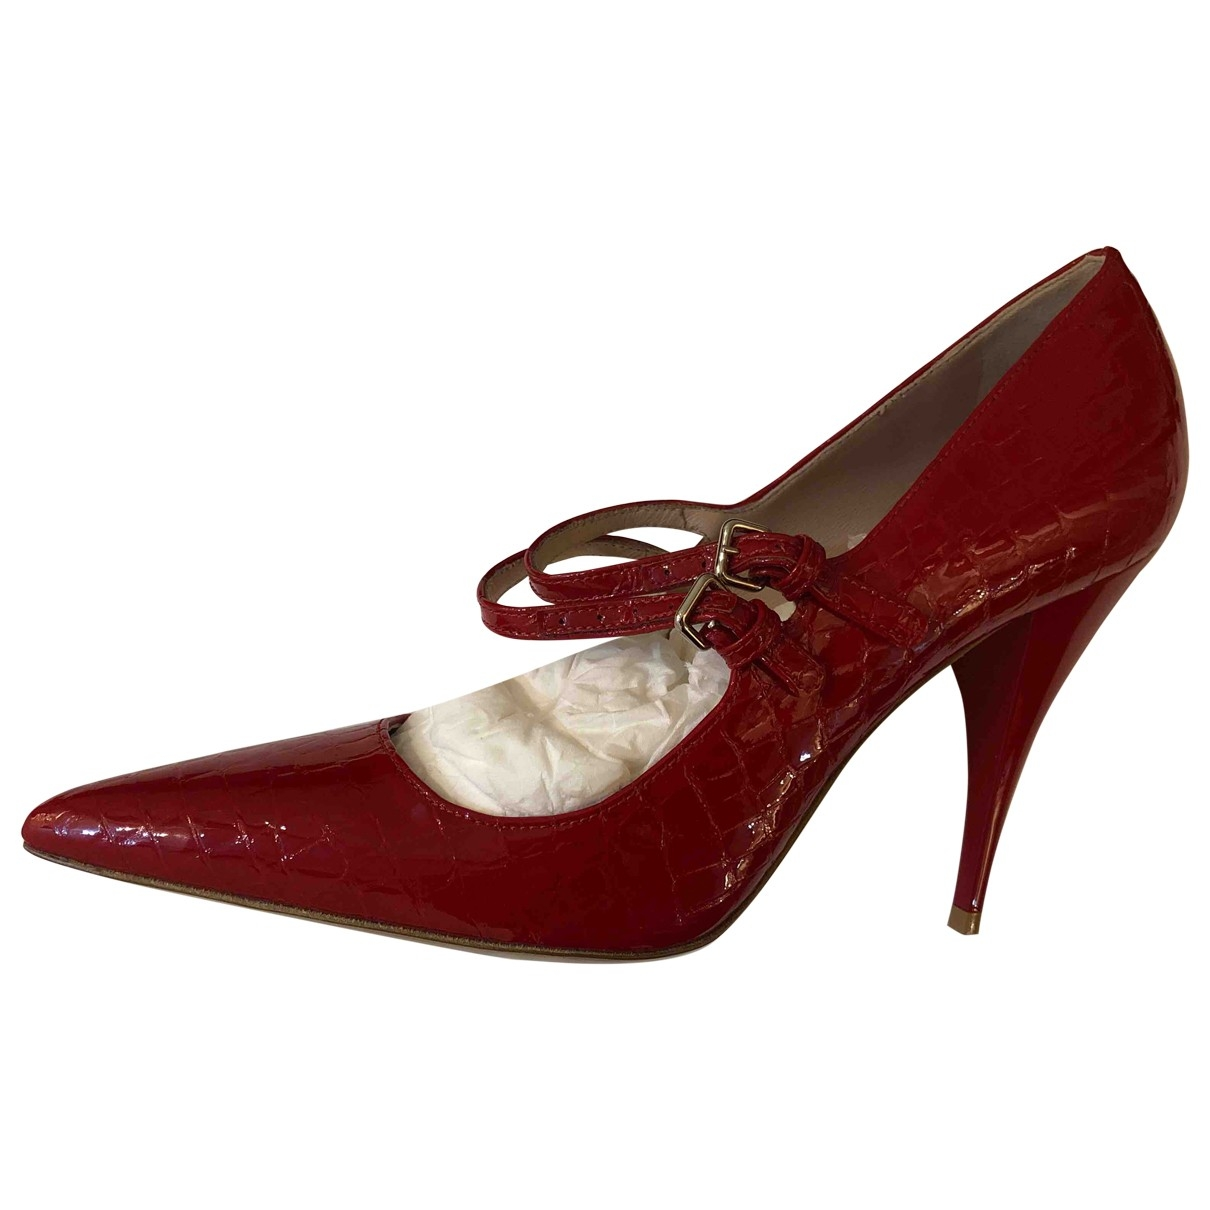 Miu Miu \N Red Leather Heels for Women 36.5 EU